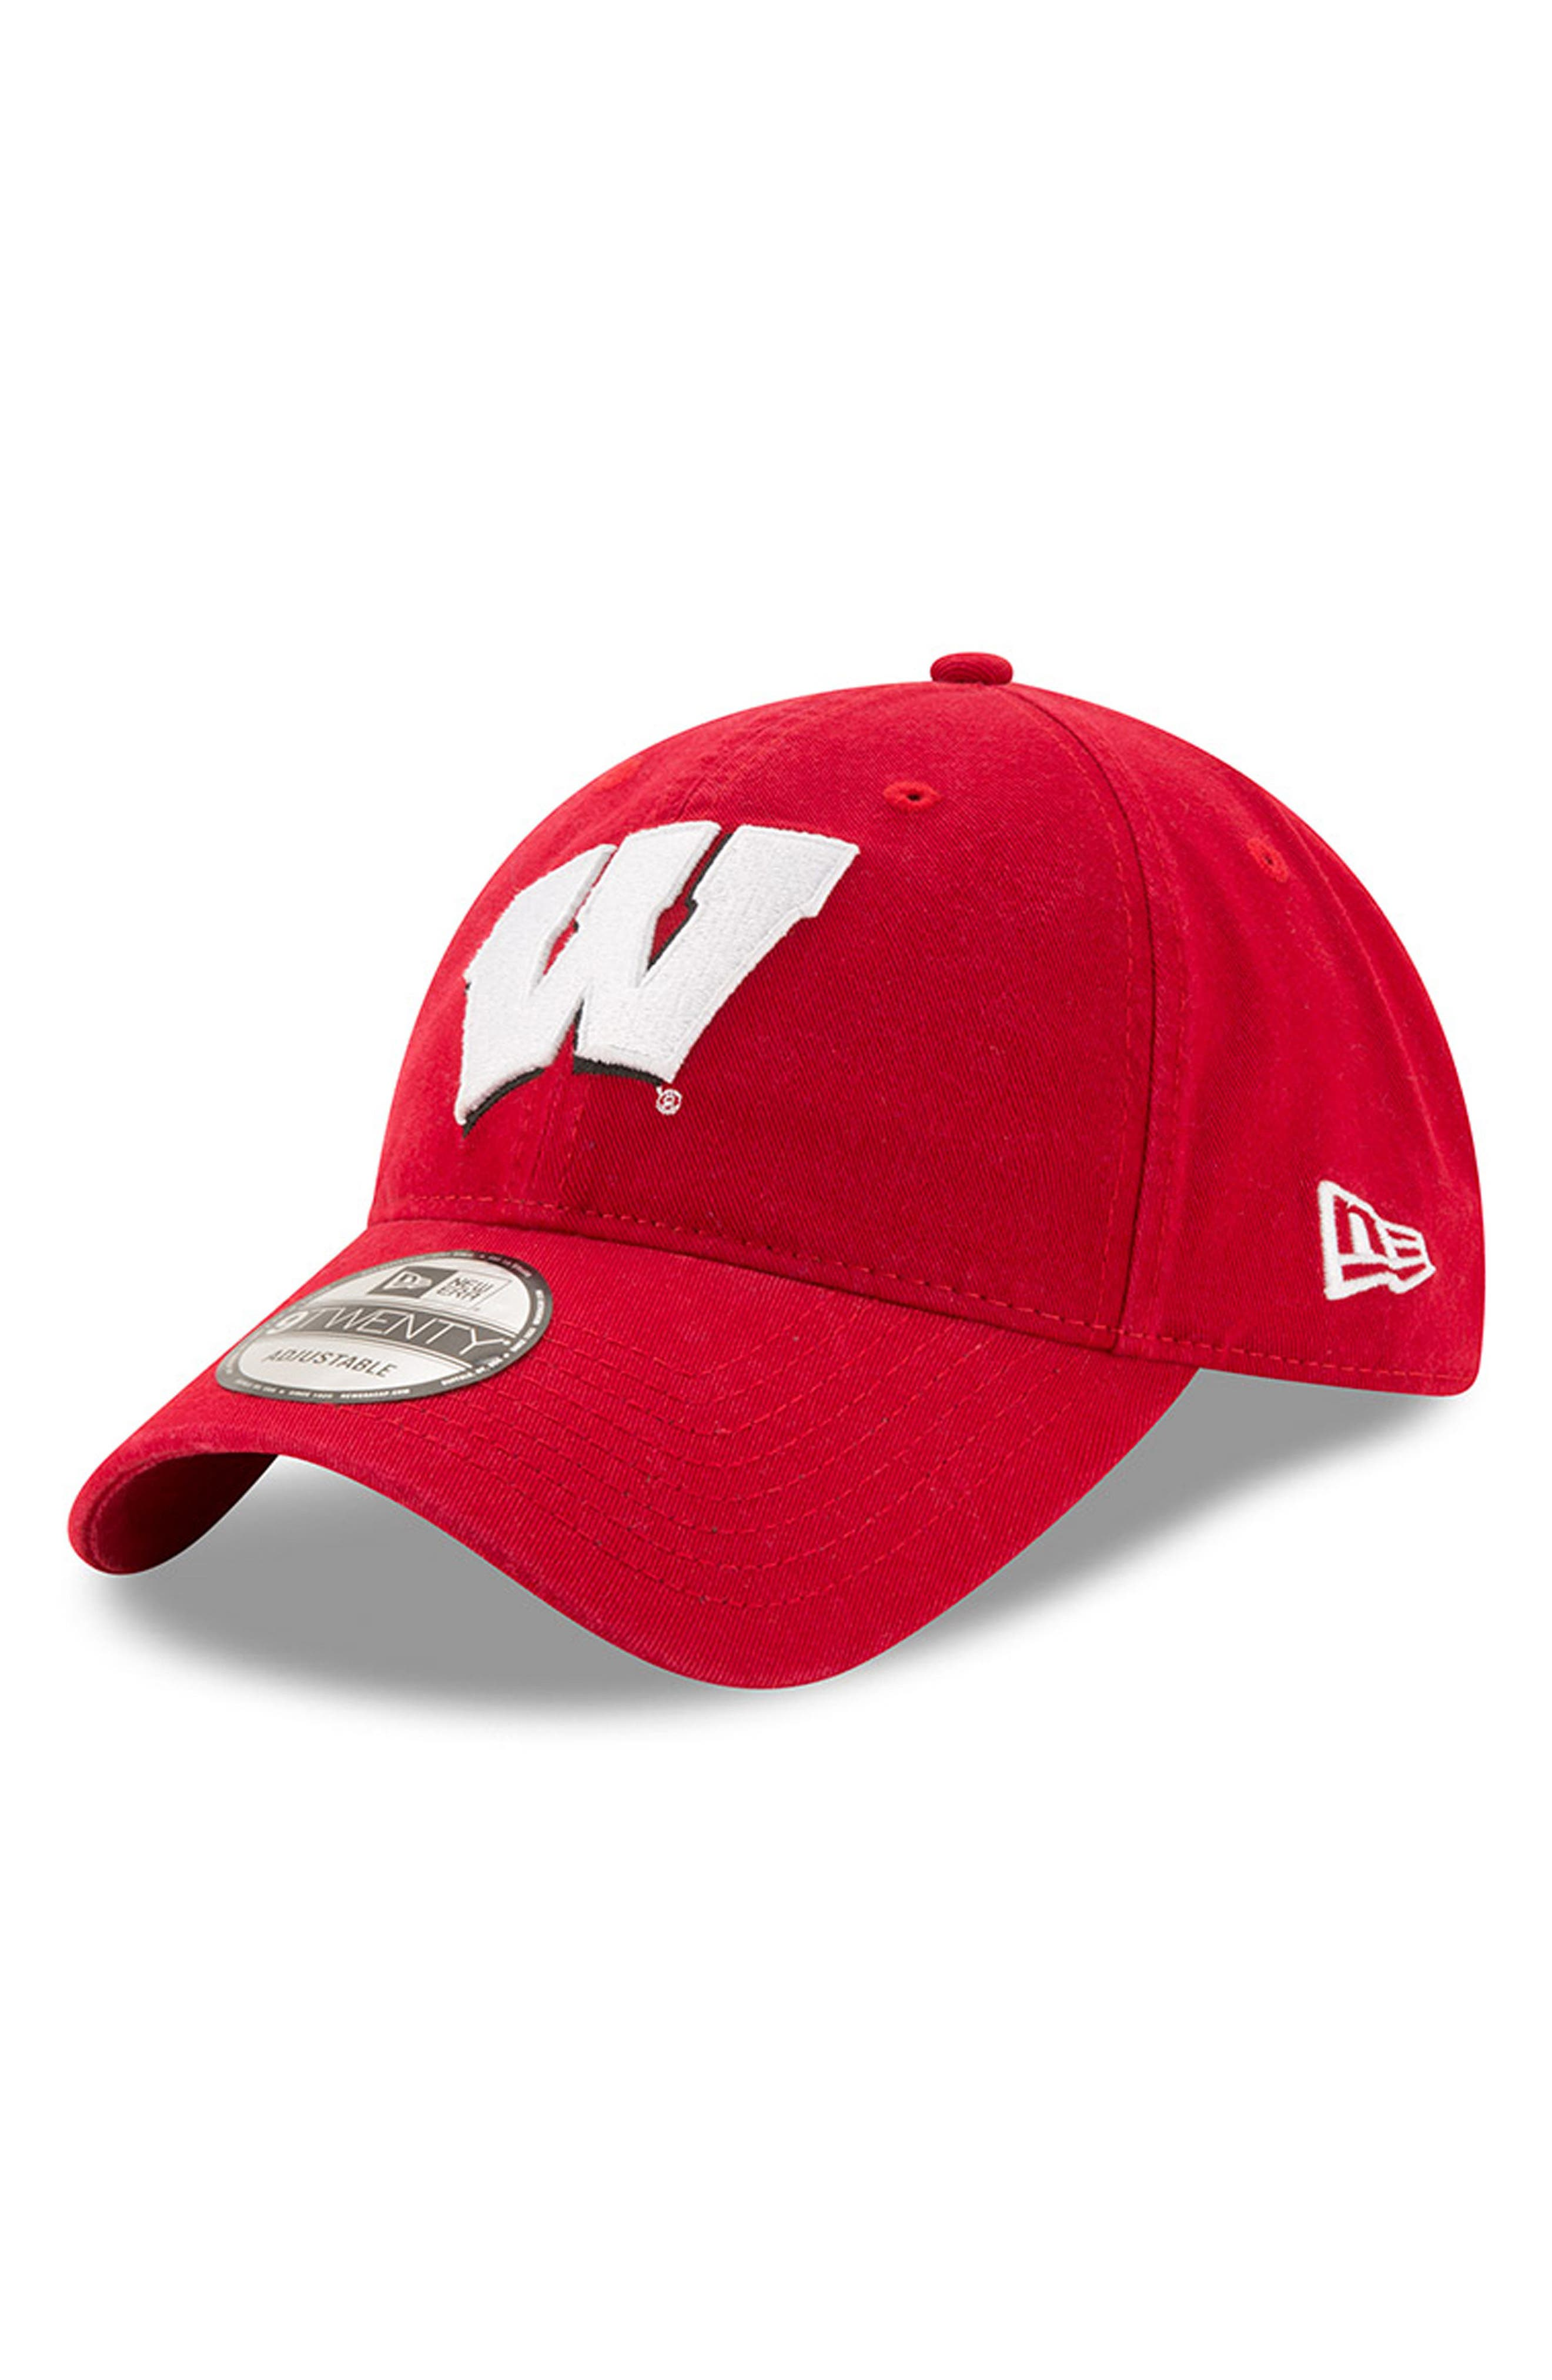 New Era Collegiate Core Classic - Wisconsin Badgers Baseball Cap,                         Main,                         color, 600